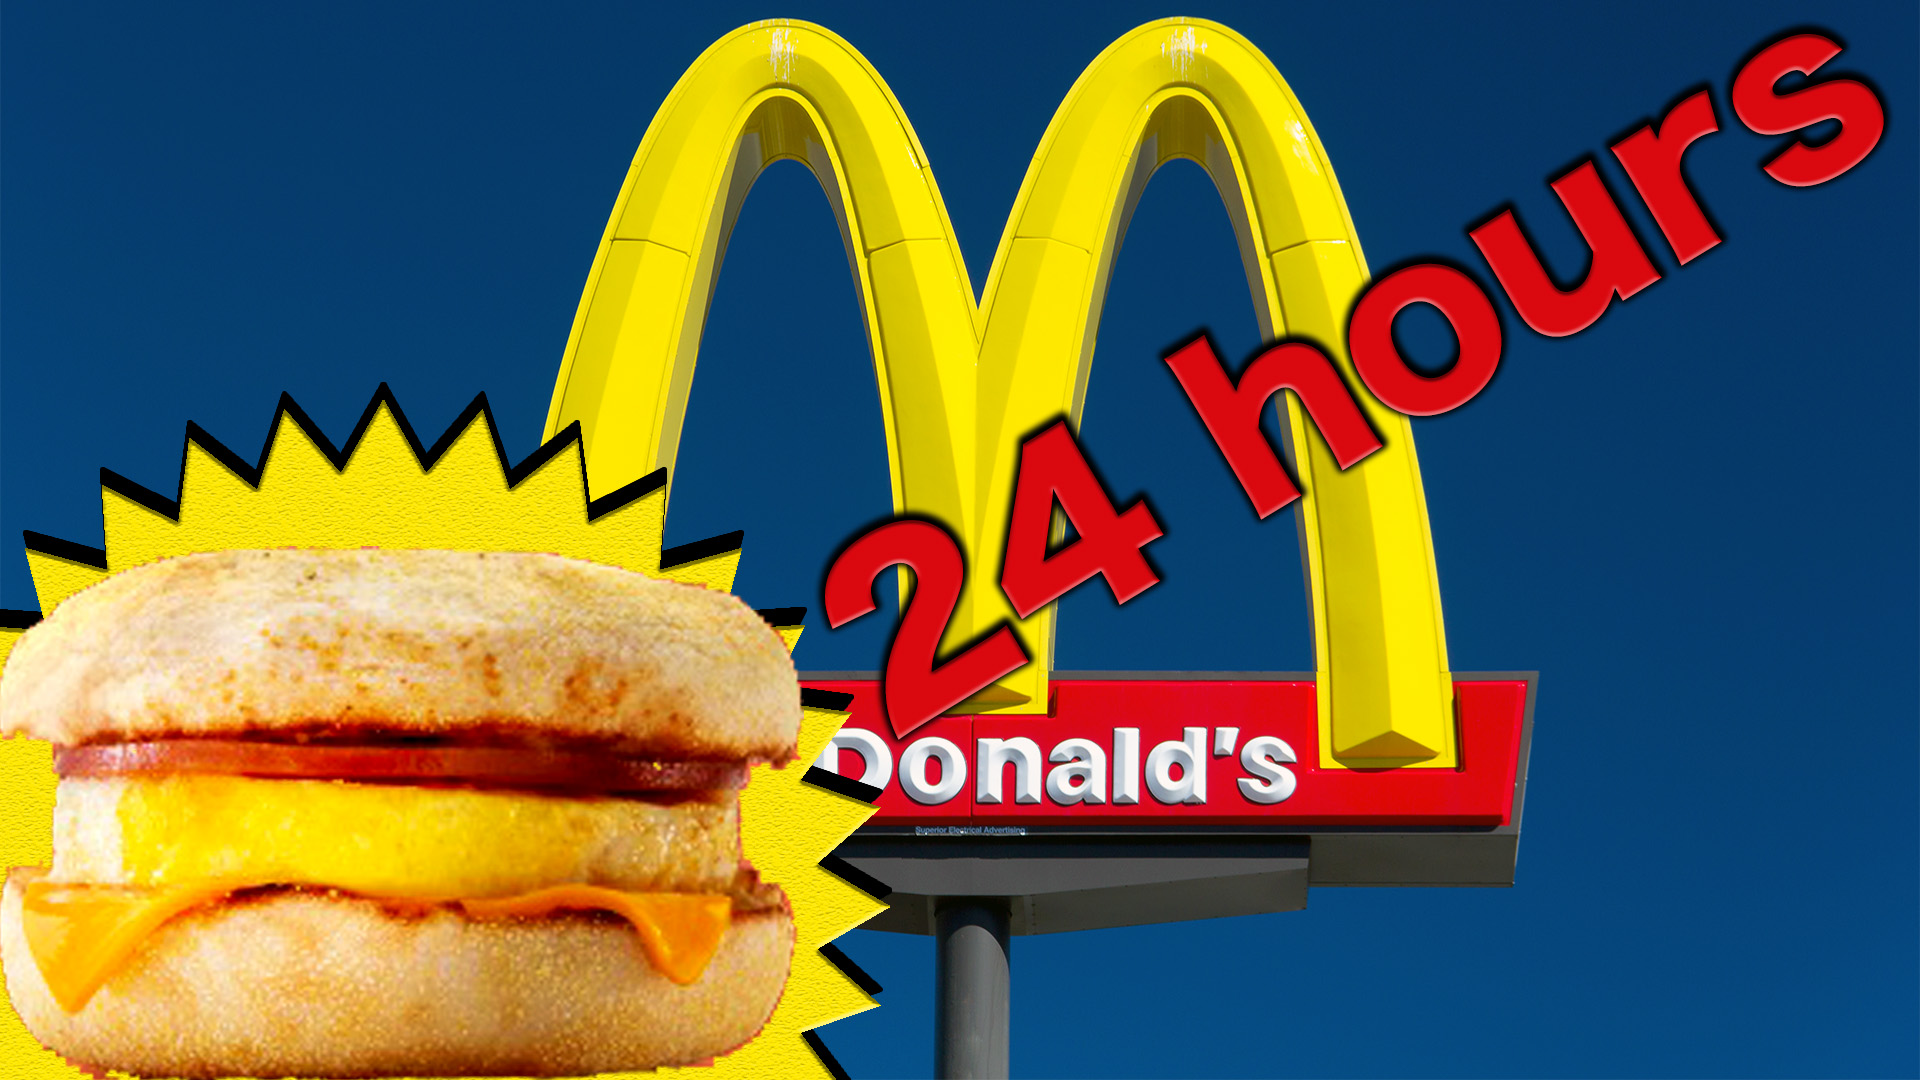 McDonalds to Test Out 24-Hour Breakfast Menu As Competition Heats Up